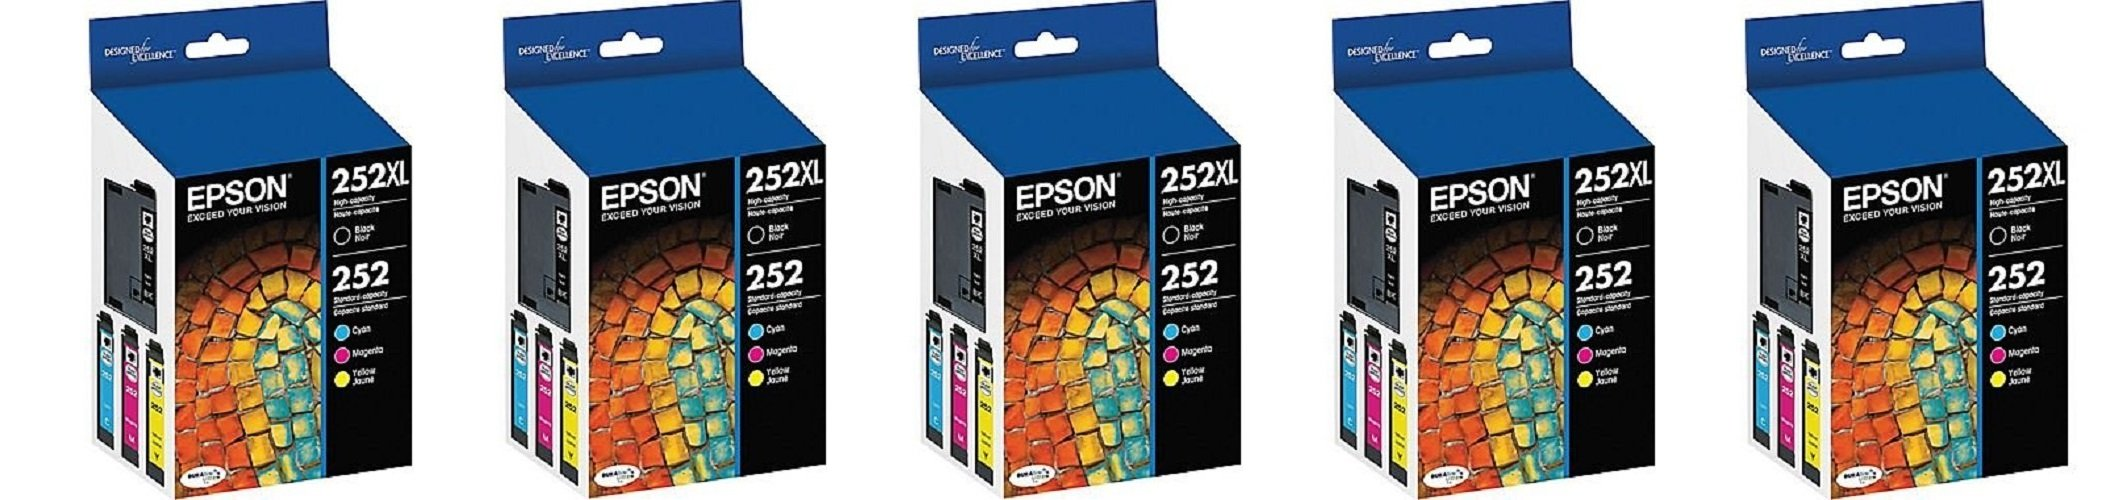 Epson T252XL-BCS Combo jJjRug Pack, Black High Capacity and C/M/Y Standard Capacity Cartridges (5 Units)